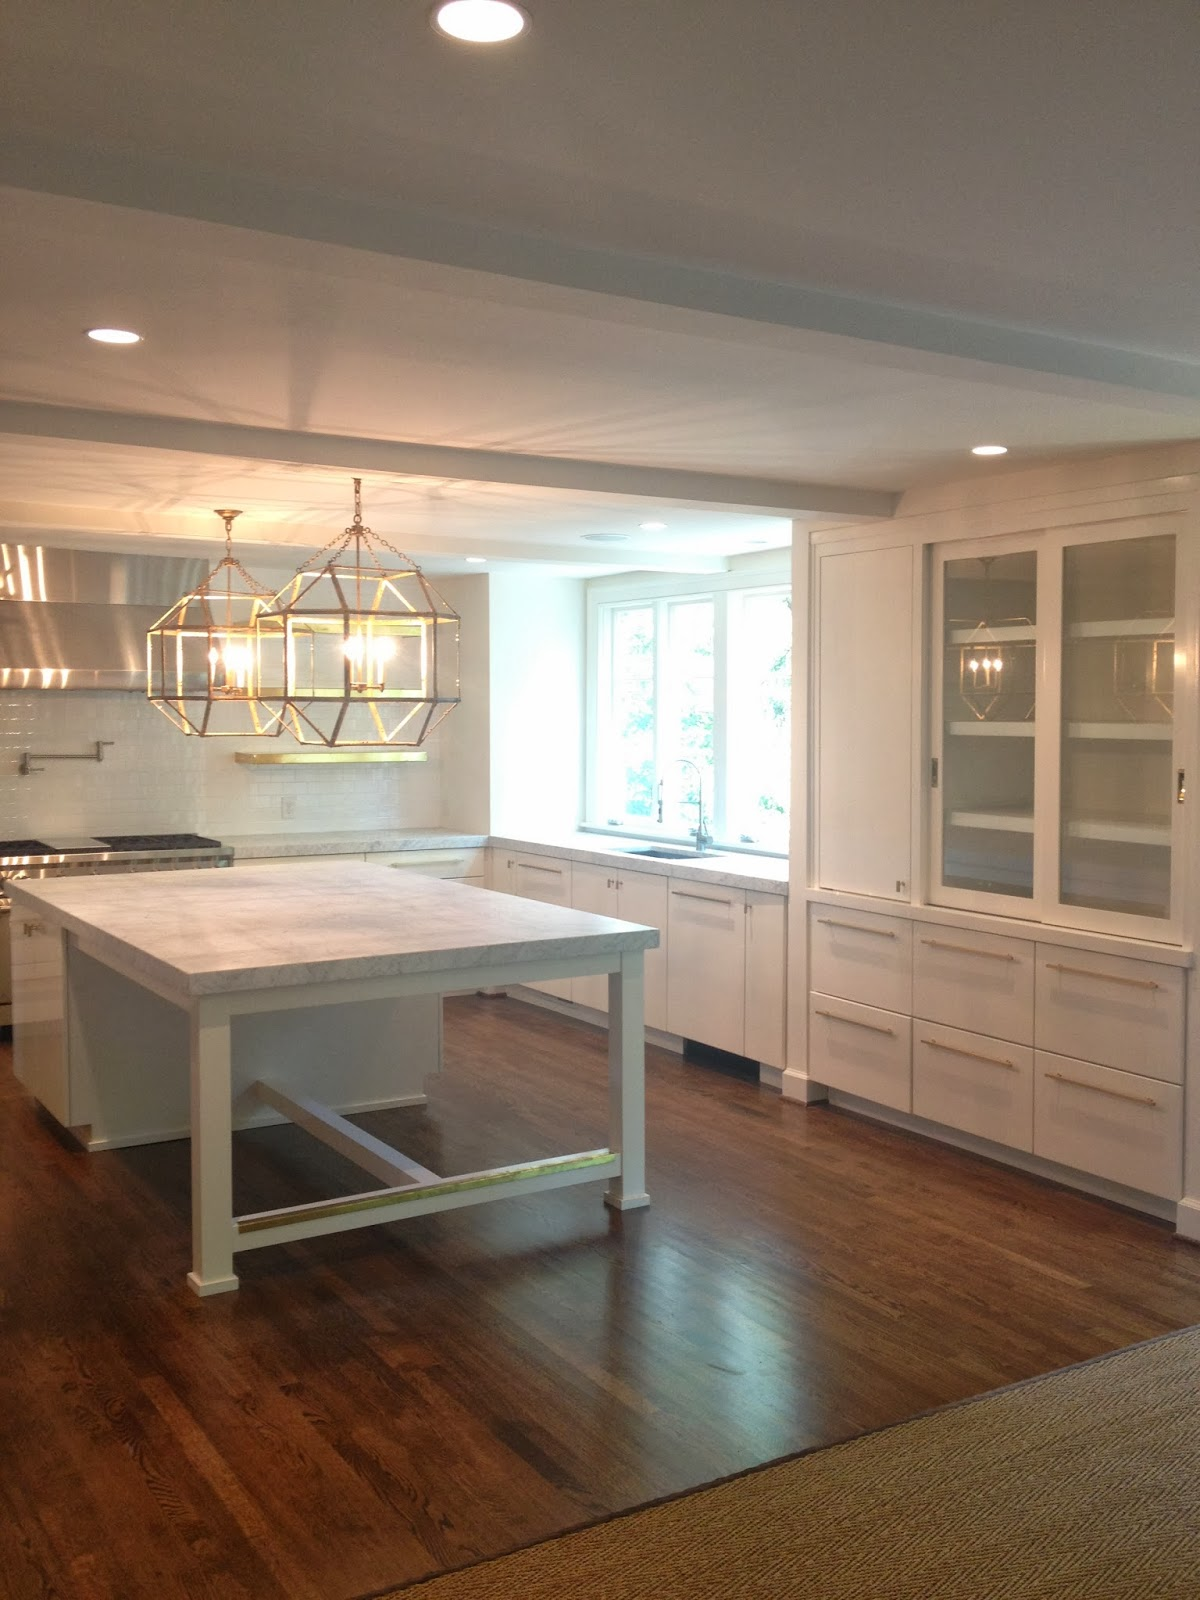 Gen 39 s favorite kitchen family room renovation for Family room renovations